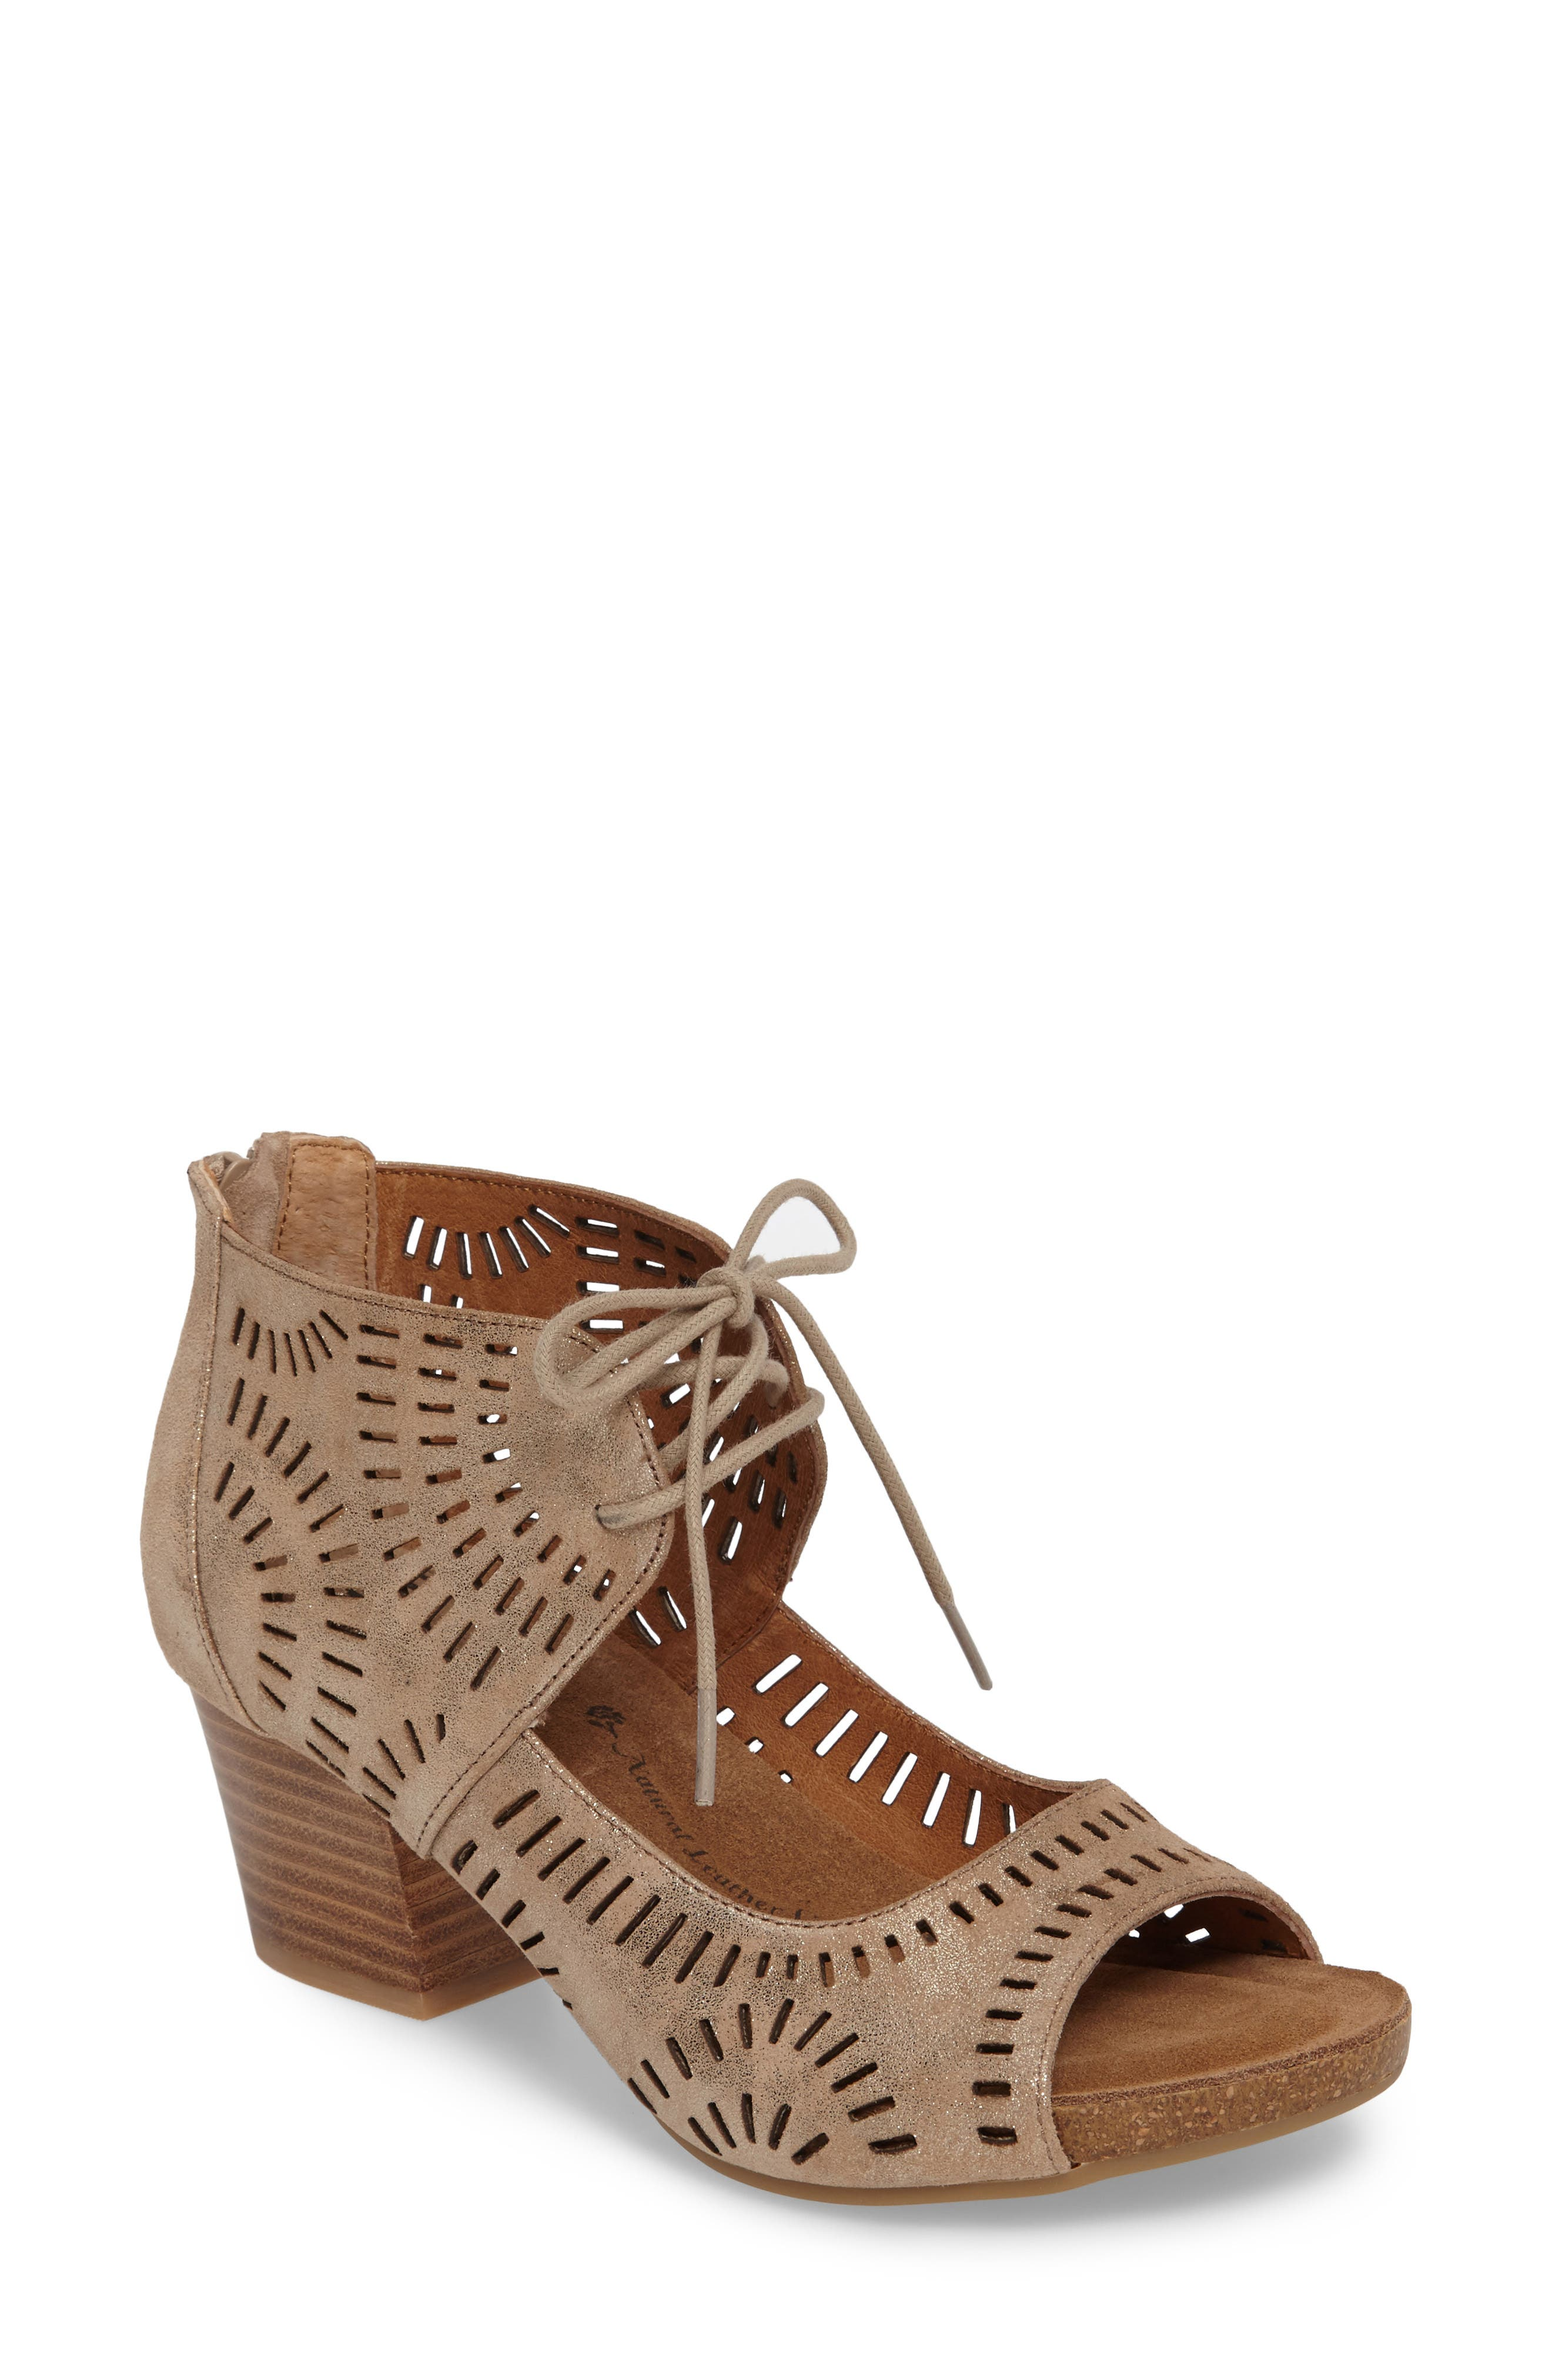 Sofft Modesto Perforated Sandal, Metallic